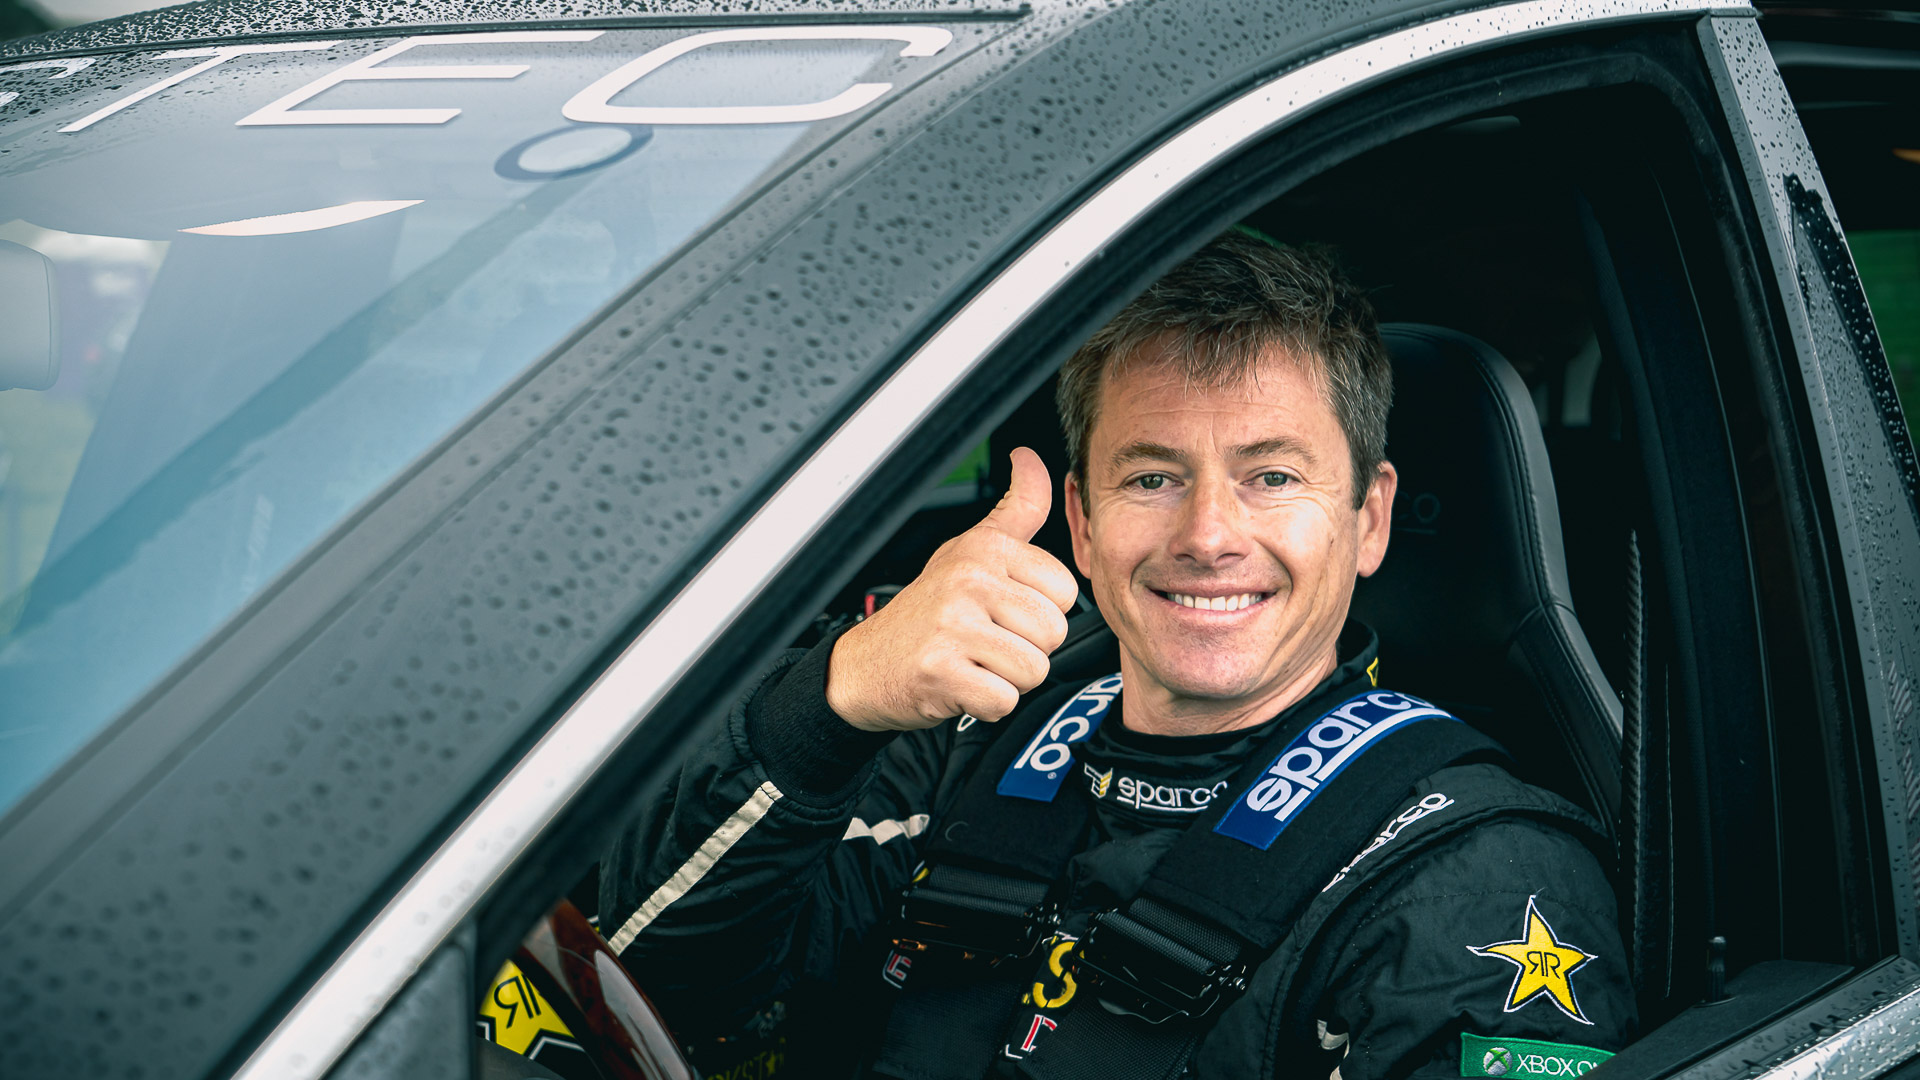 TANNER FOUST BREAKS RECORD